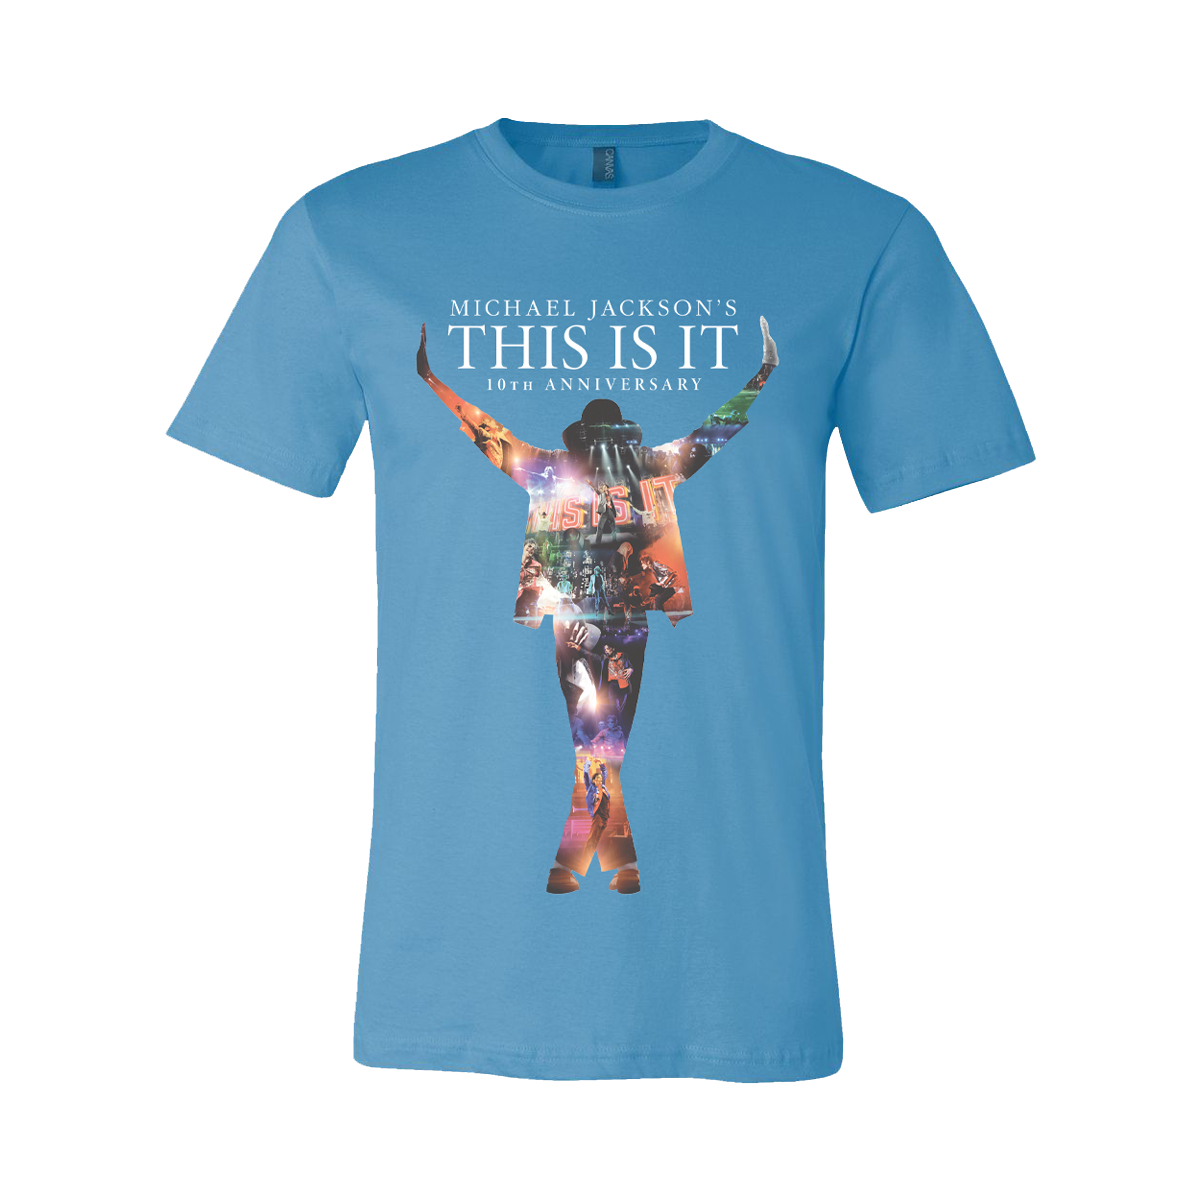 Michael Jackson's This Is It - Full Color T-shirt